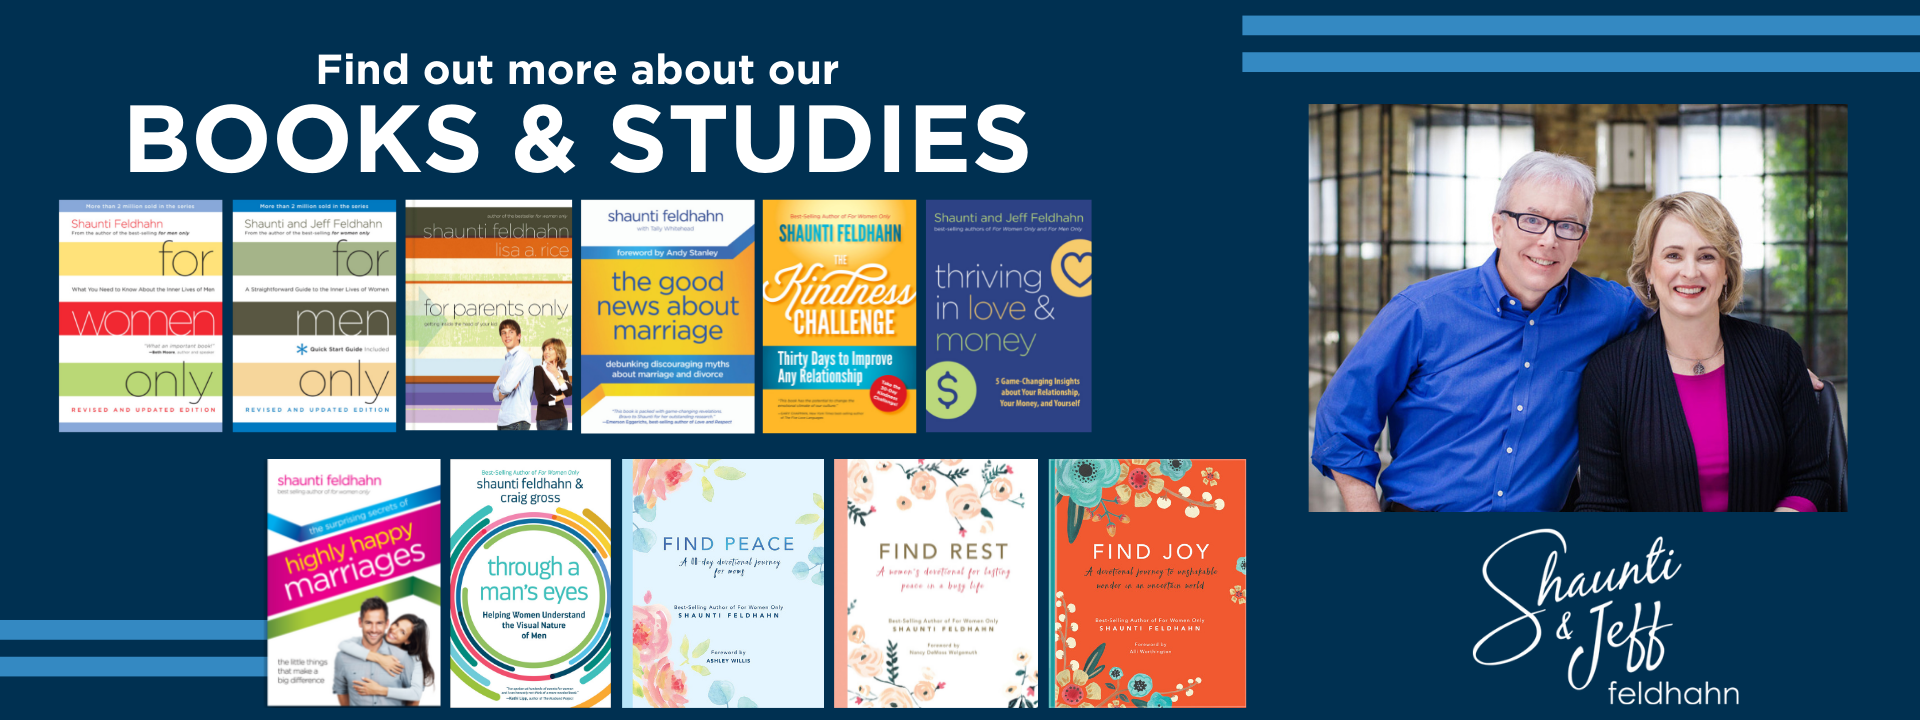 Find out more about our books and studies